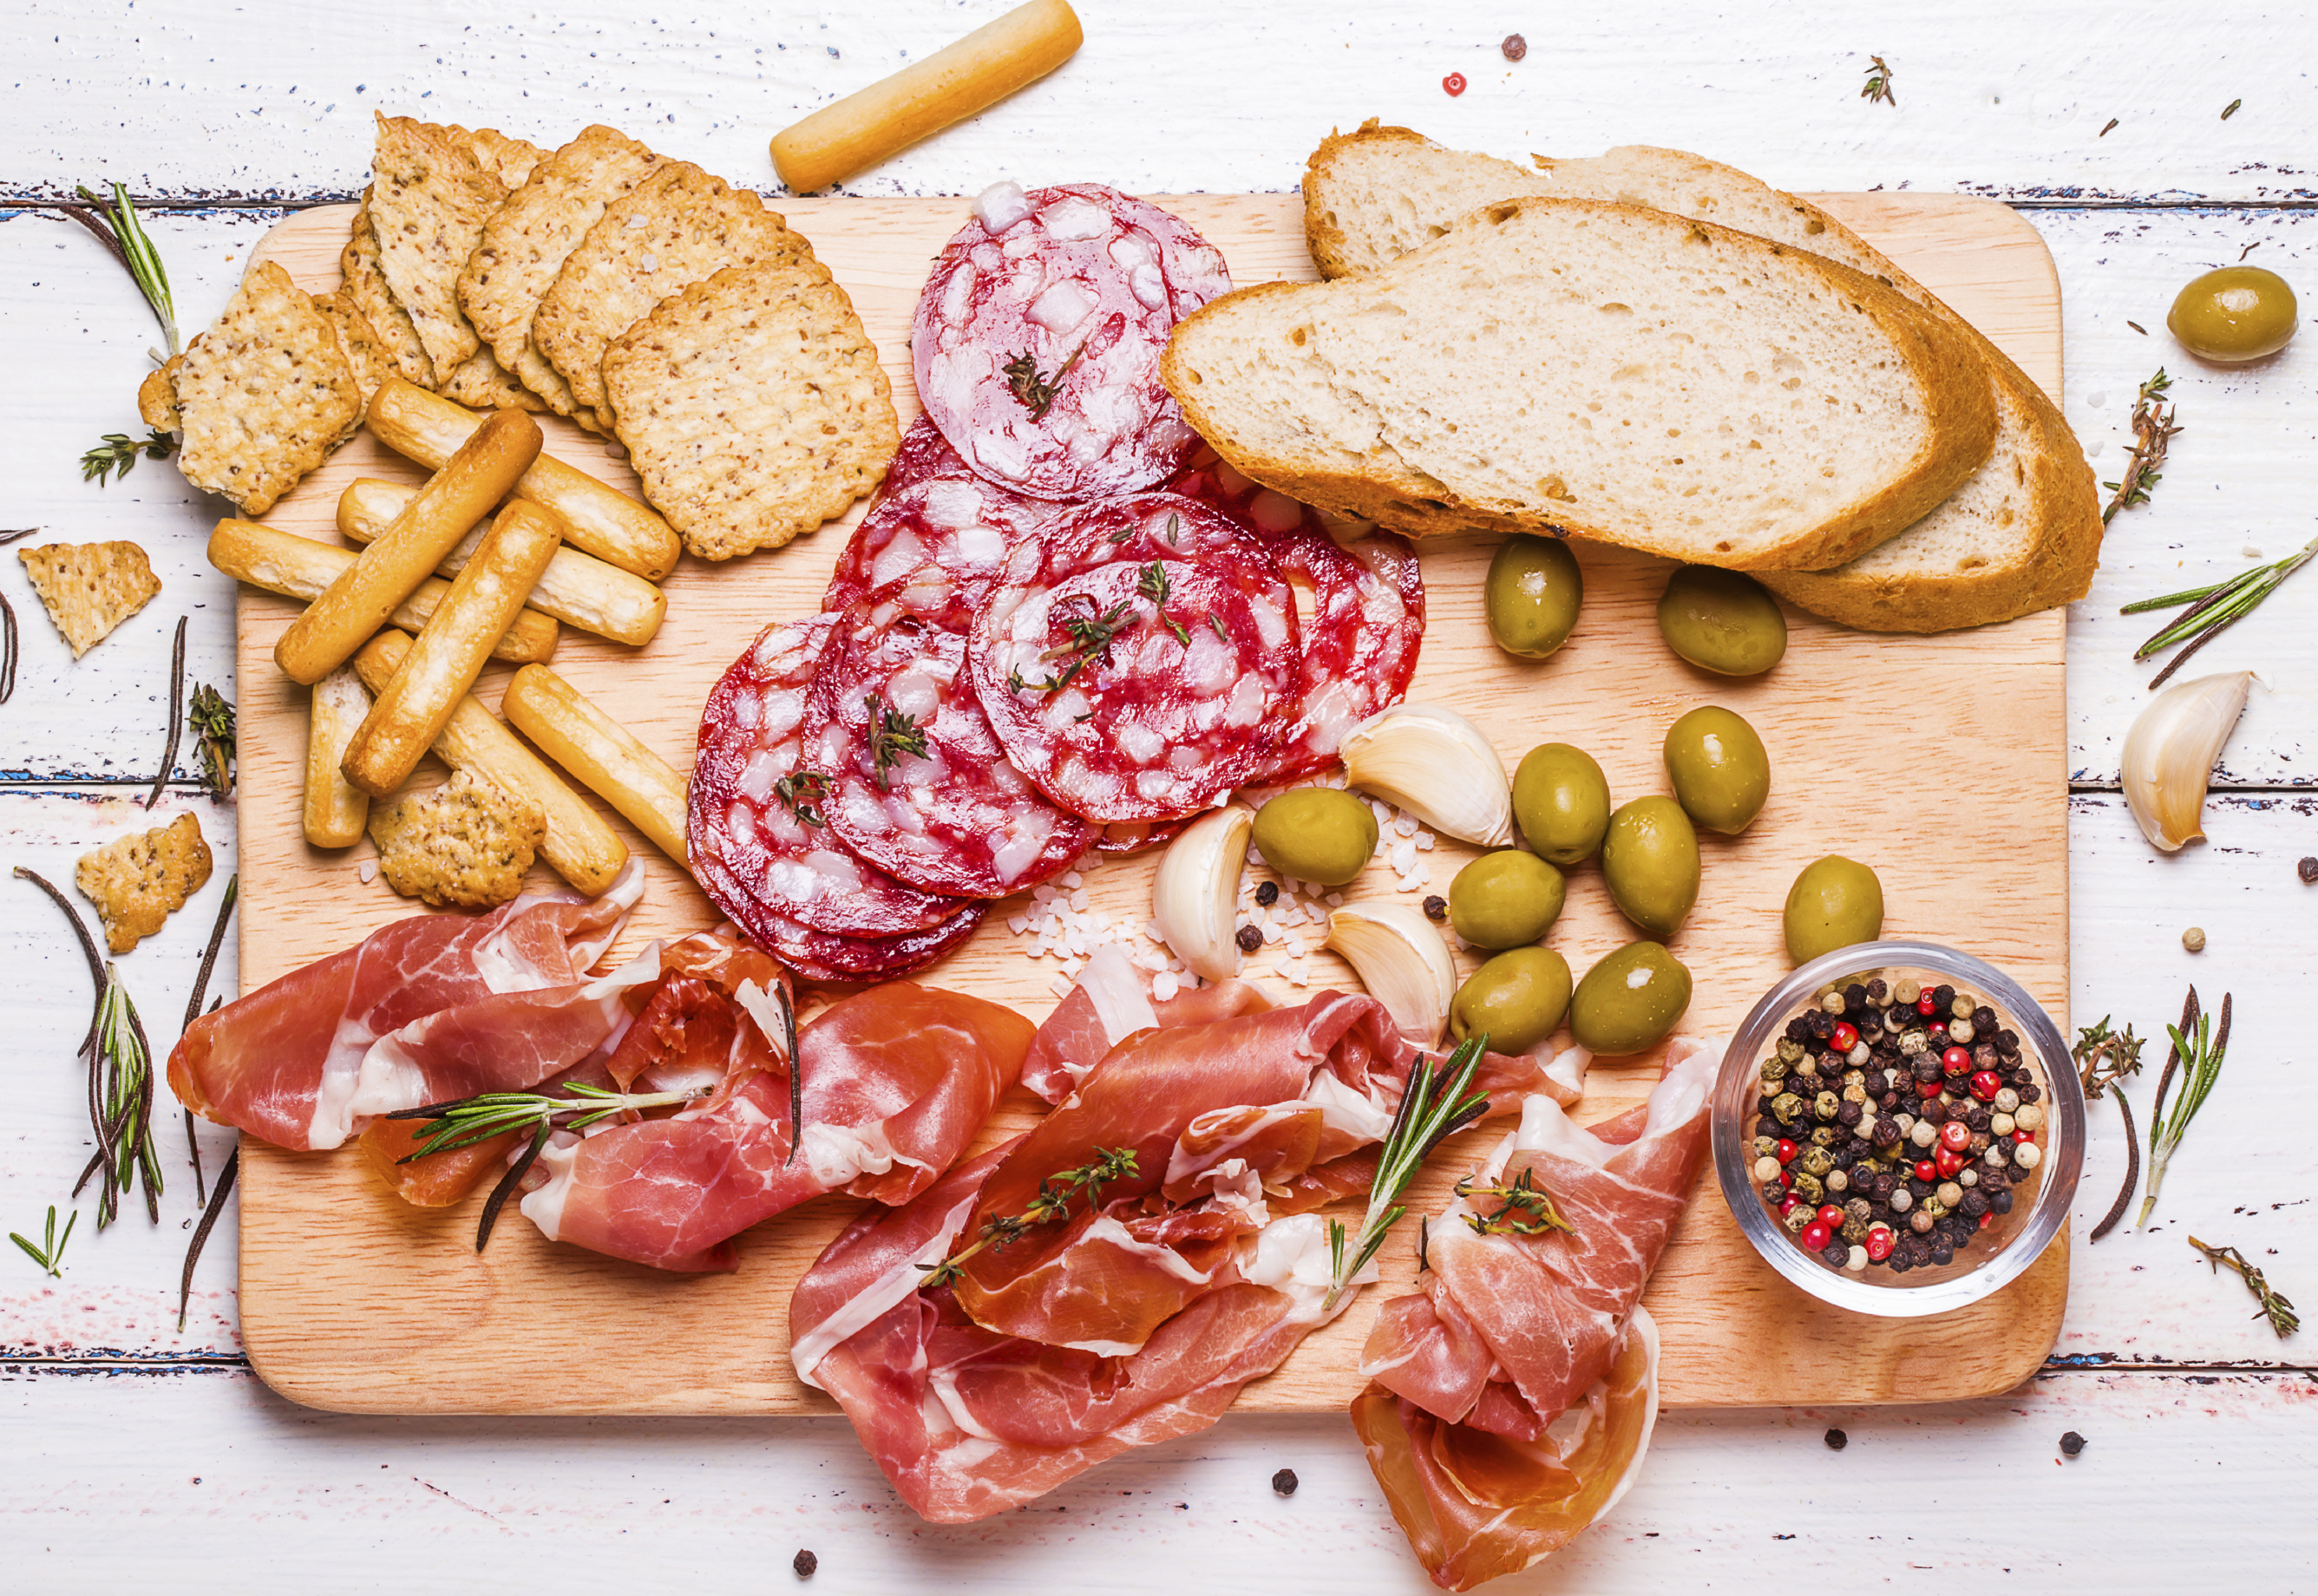 Cold Cuts (Cured Meats): Are They Healthy?